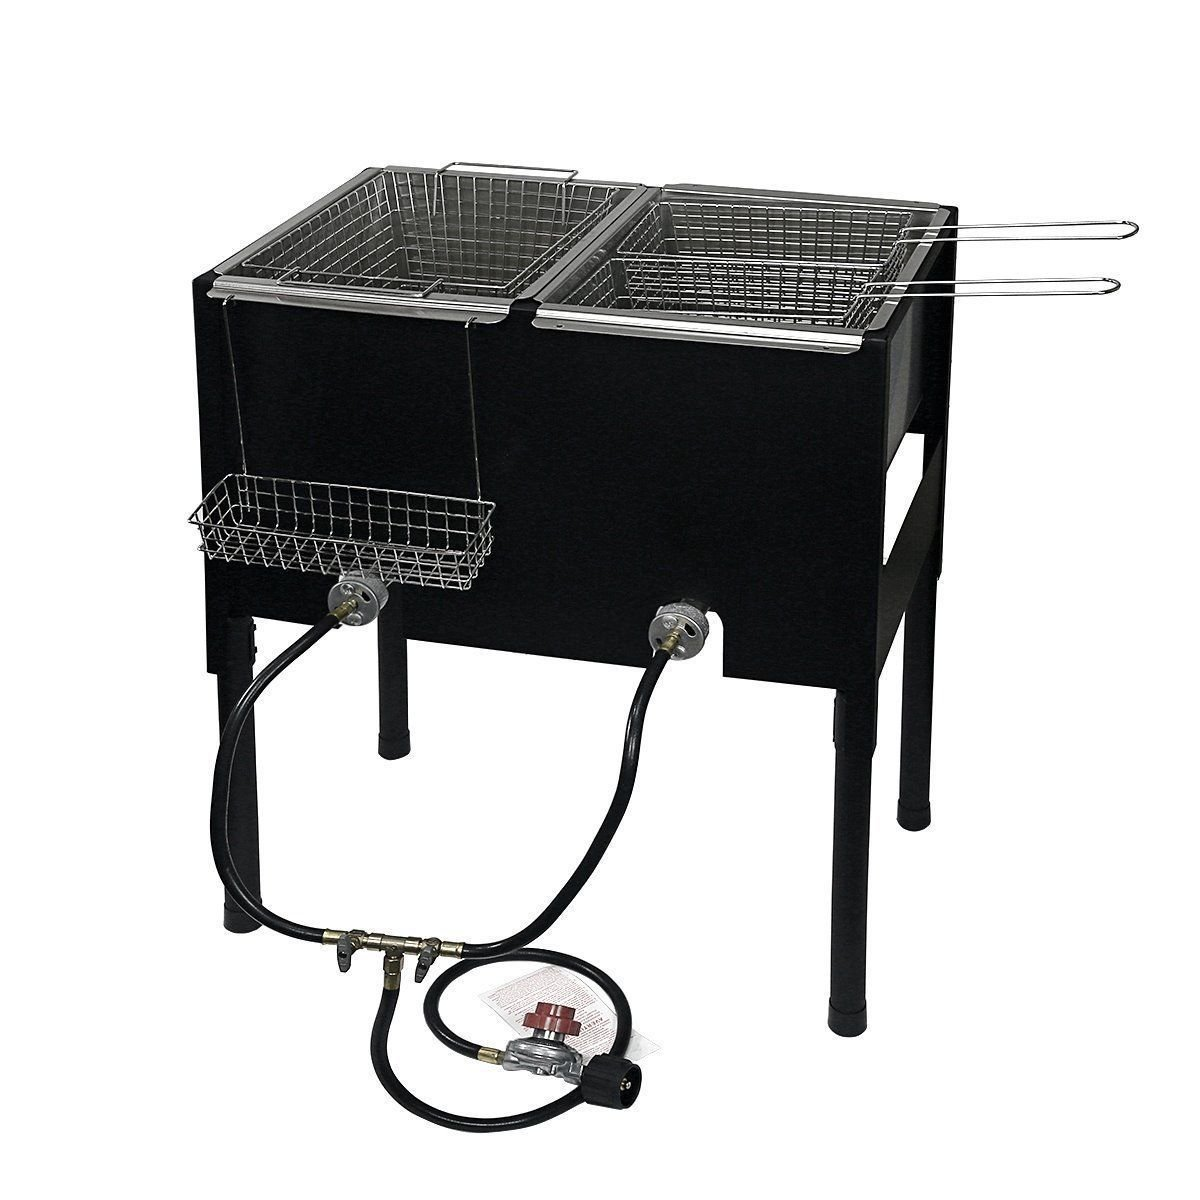 Propane LPG Camping Stove 2 Burner basket Gas Double Deep Fryer Cooker Outdoor